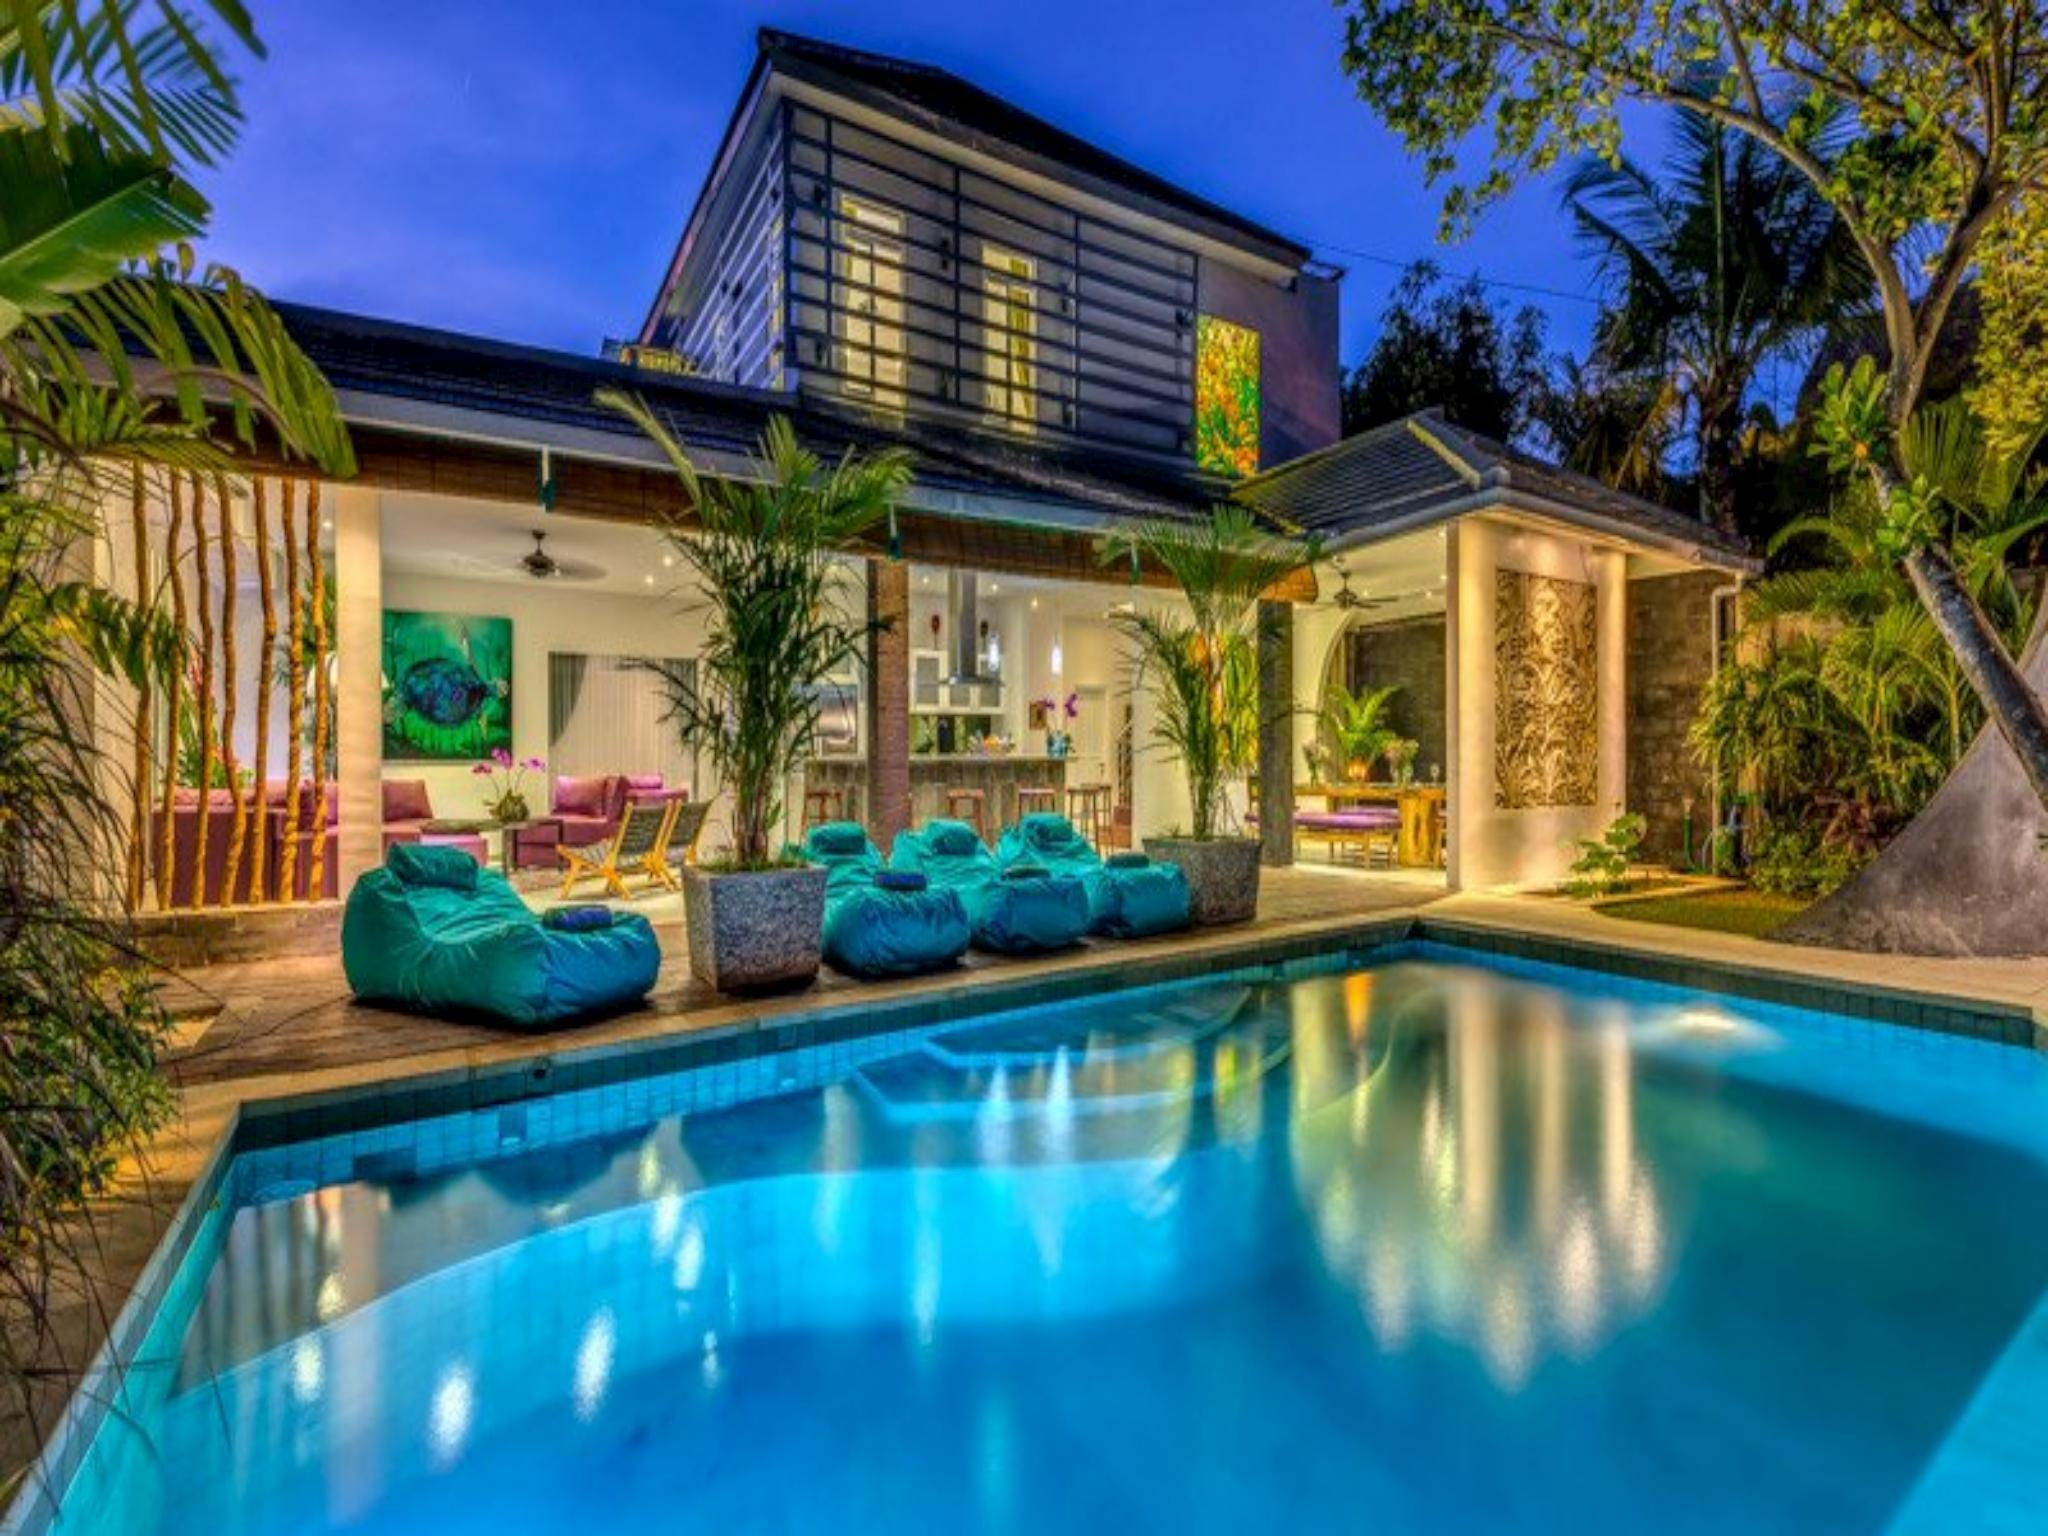 Best Price on Villa Alchemy Seminyak in Bali + Reviews